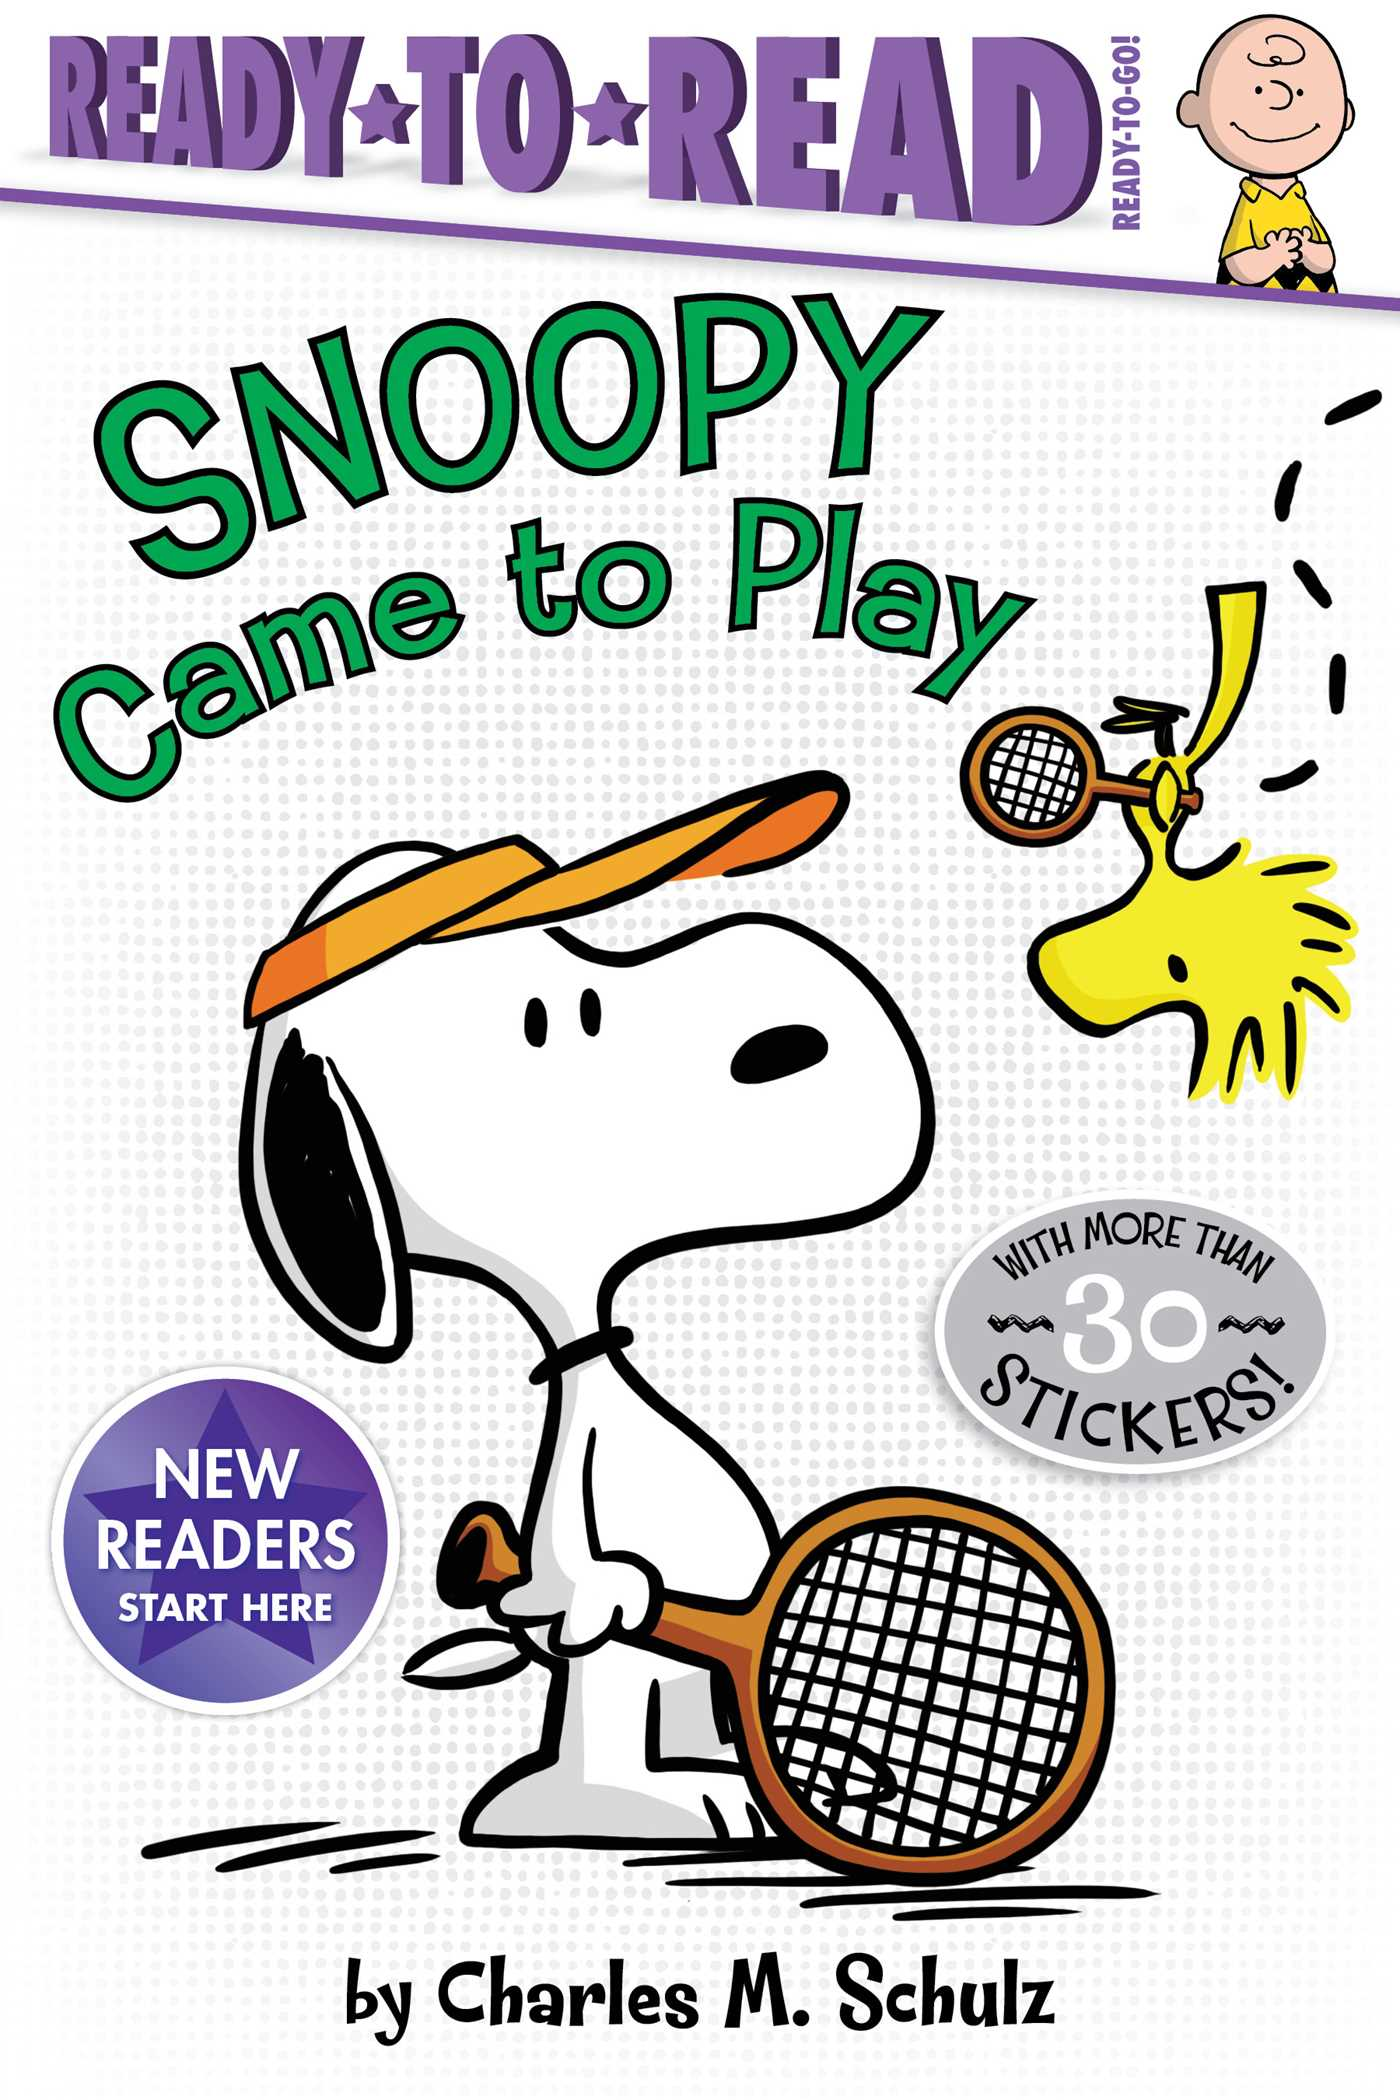 Snoopy came to play 9781534415065 hr